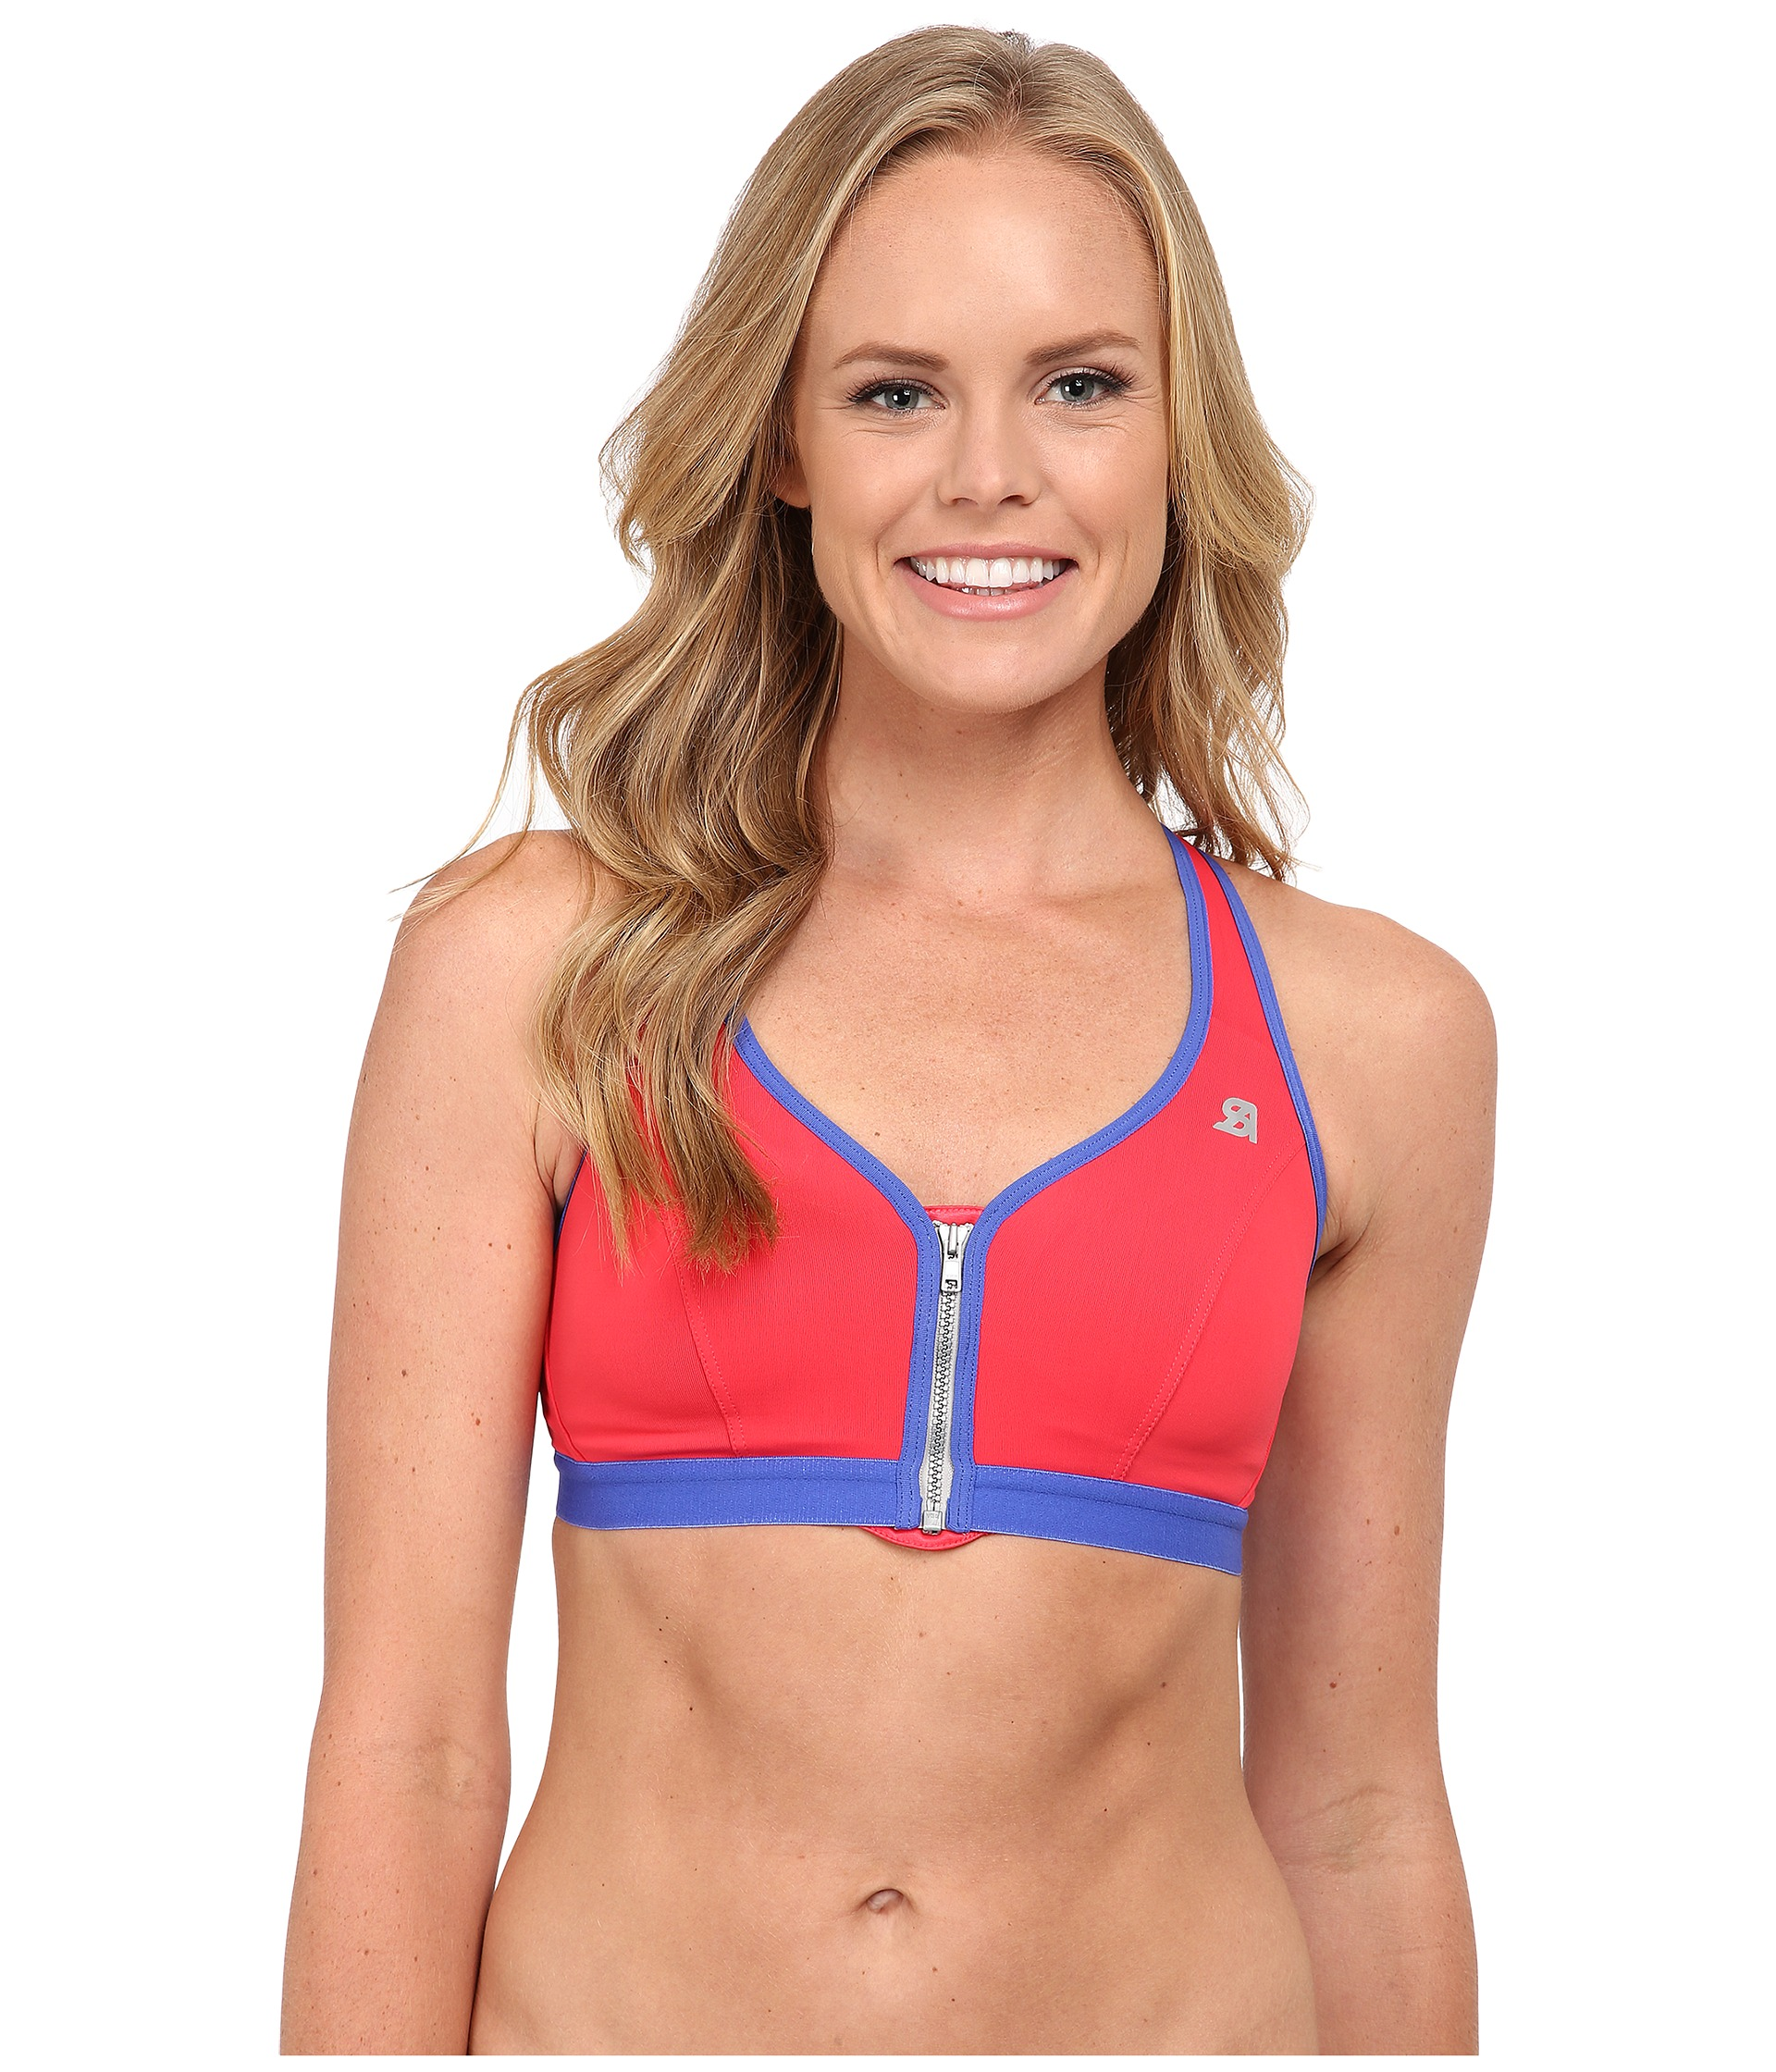 936e96cfe5984 Shock Absorber Active Zipped Plunge Sports Bra S00BW on PopScreen